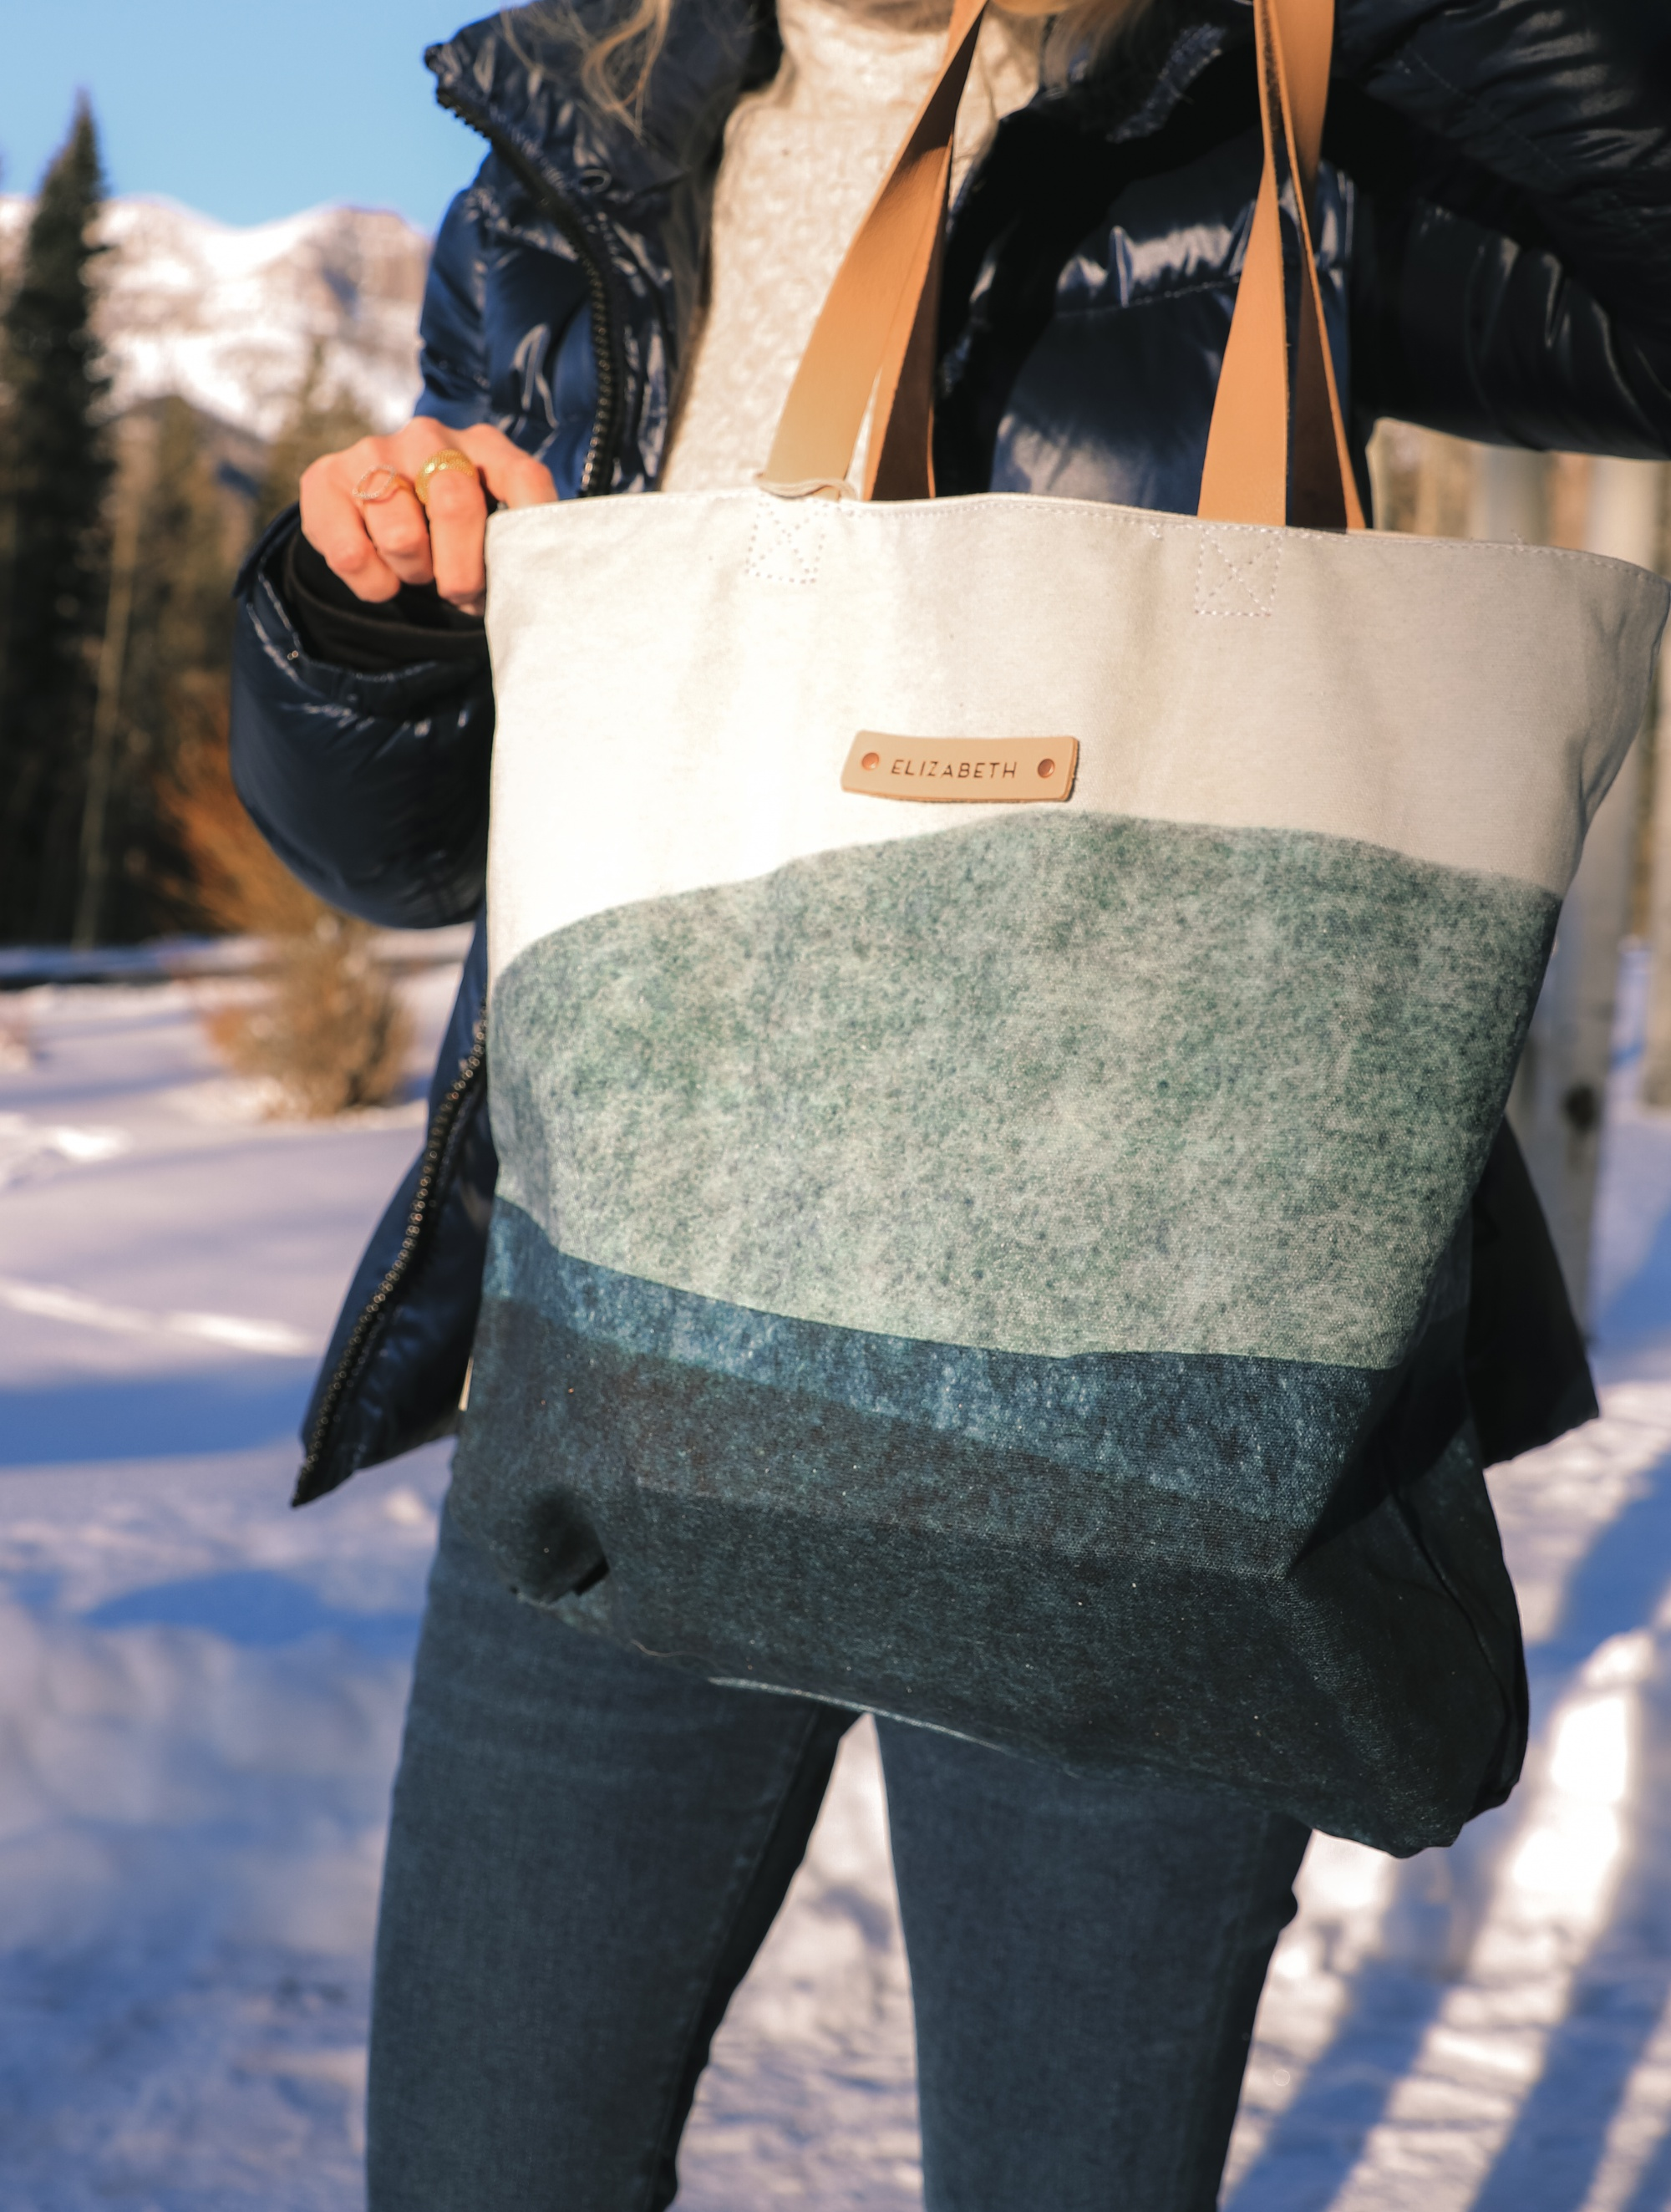 Personalized Gifts, Erin Busbee of Busbee Style carrying a blue and white personalized tote bag from Minted wearing a SAM. puffer jacket with a cable knit sweater and jeans in Telluride, Colorado